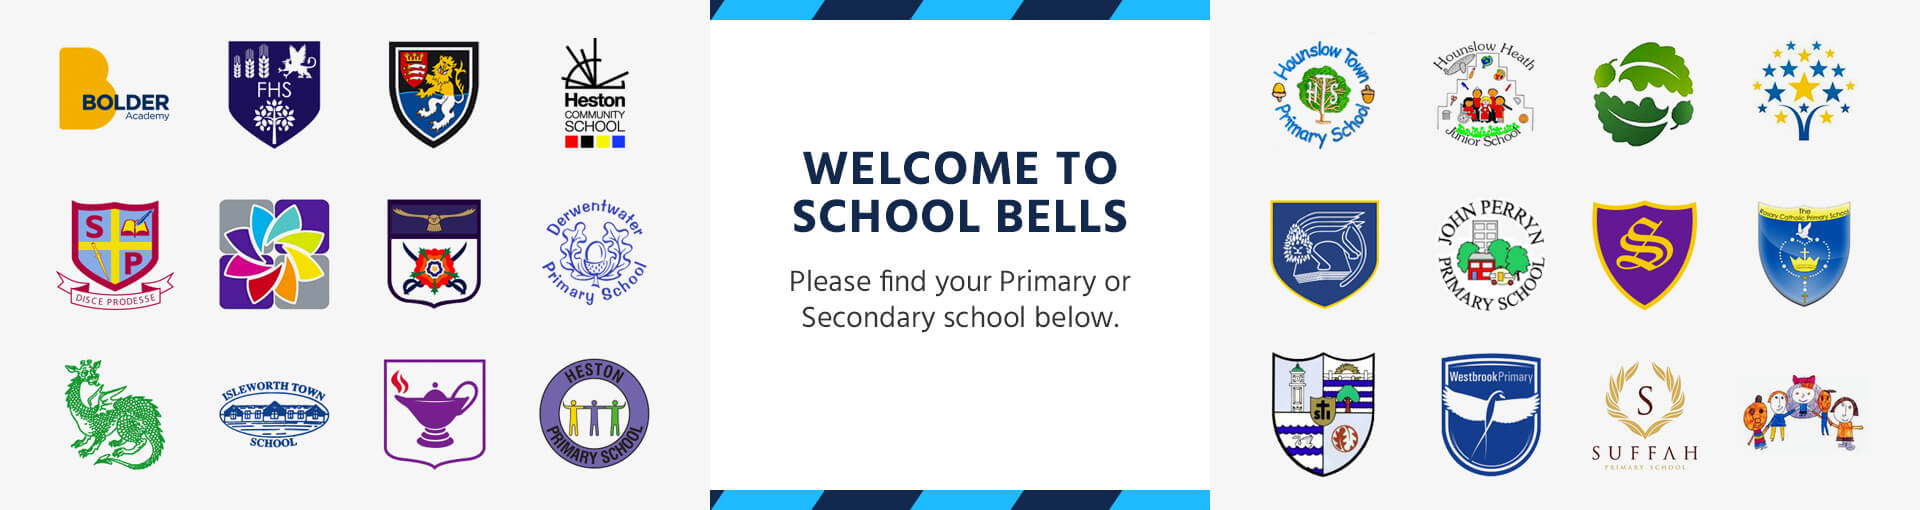 Primary and Secondary Schools List for School uniforms